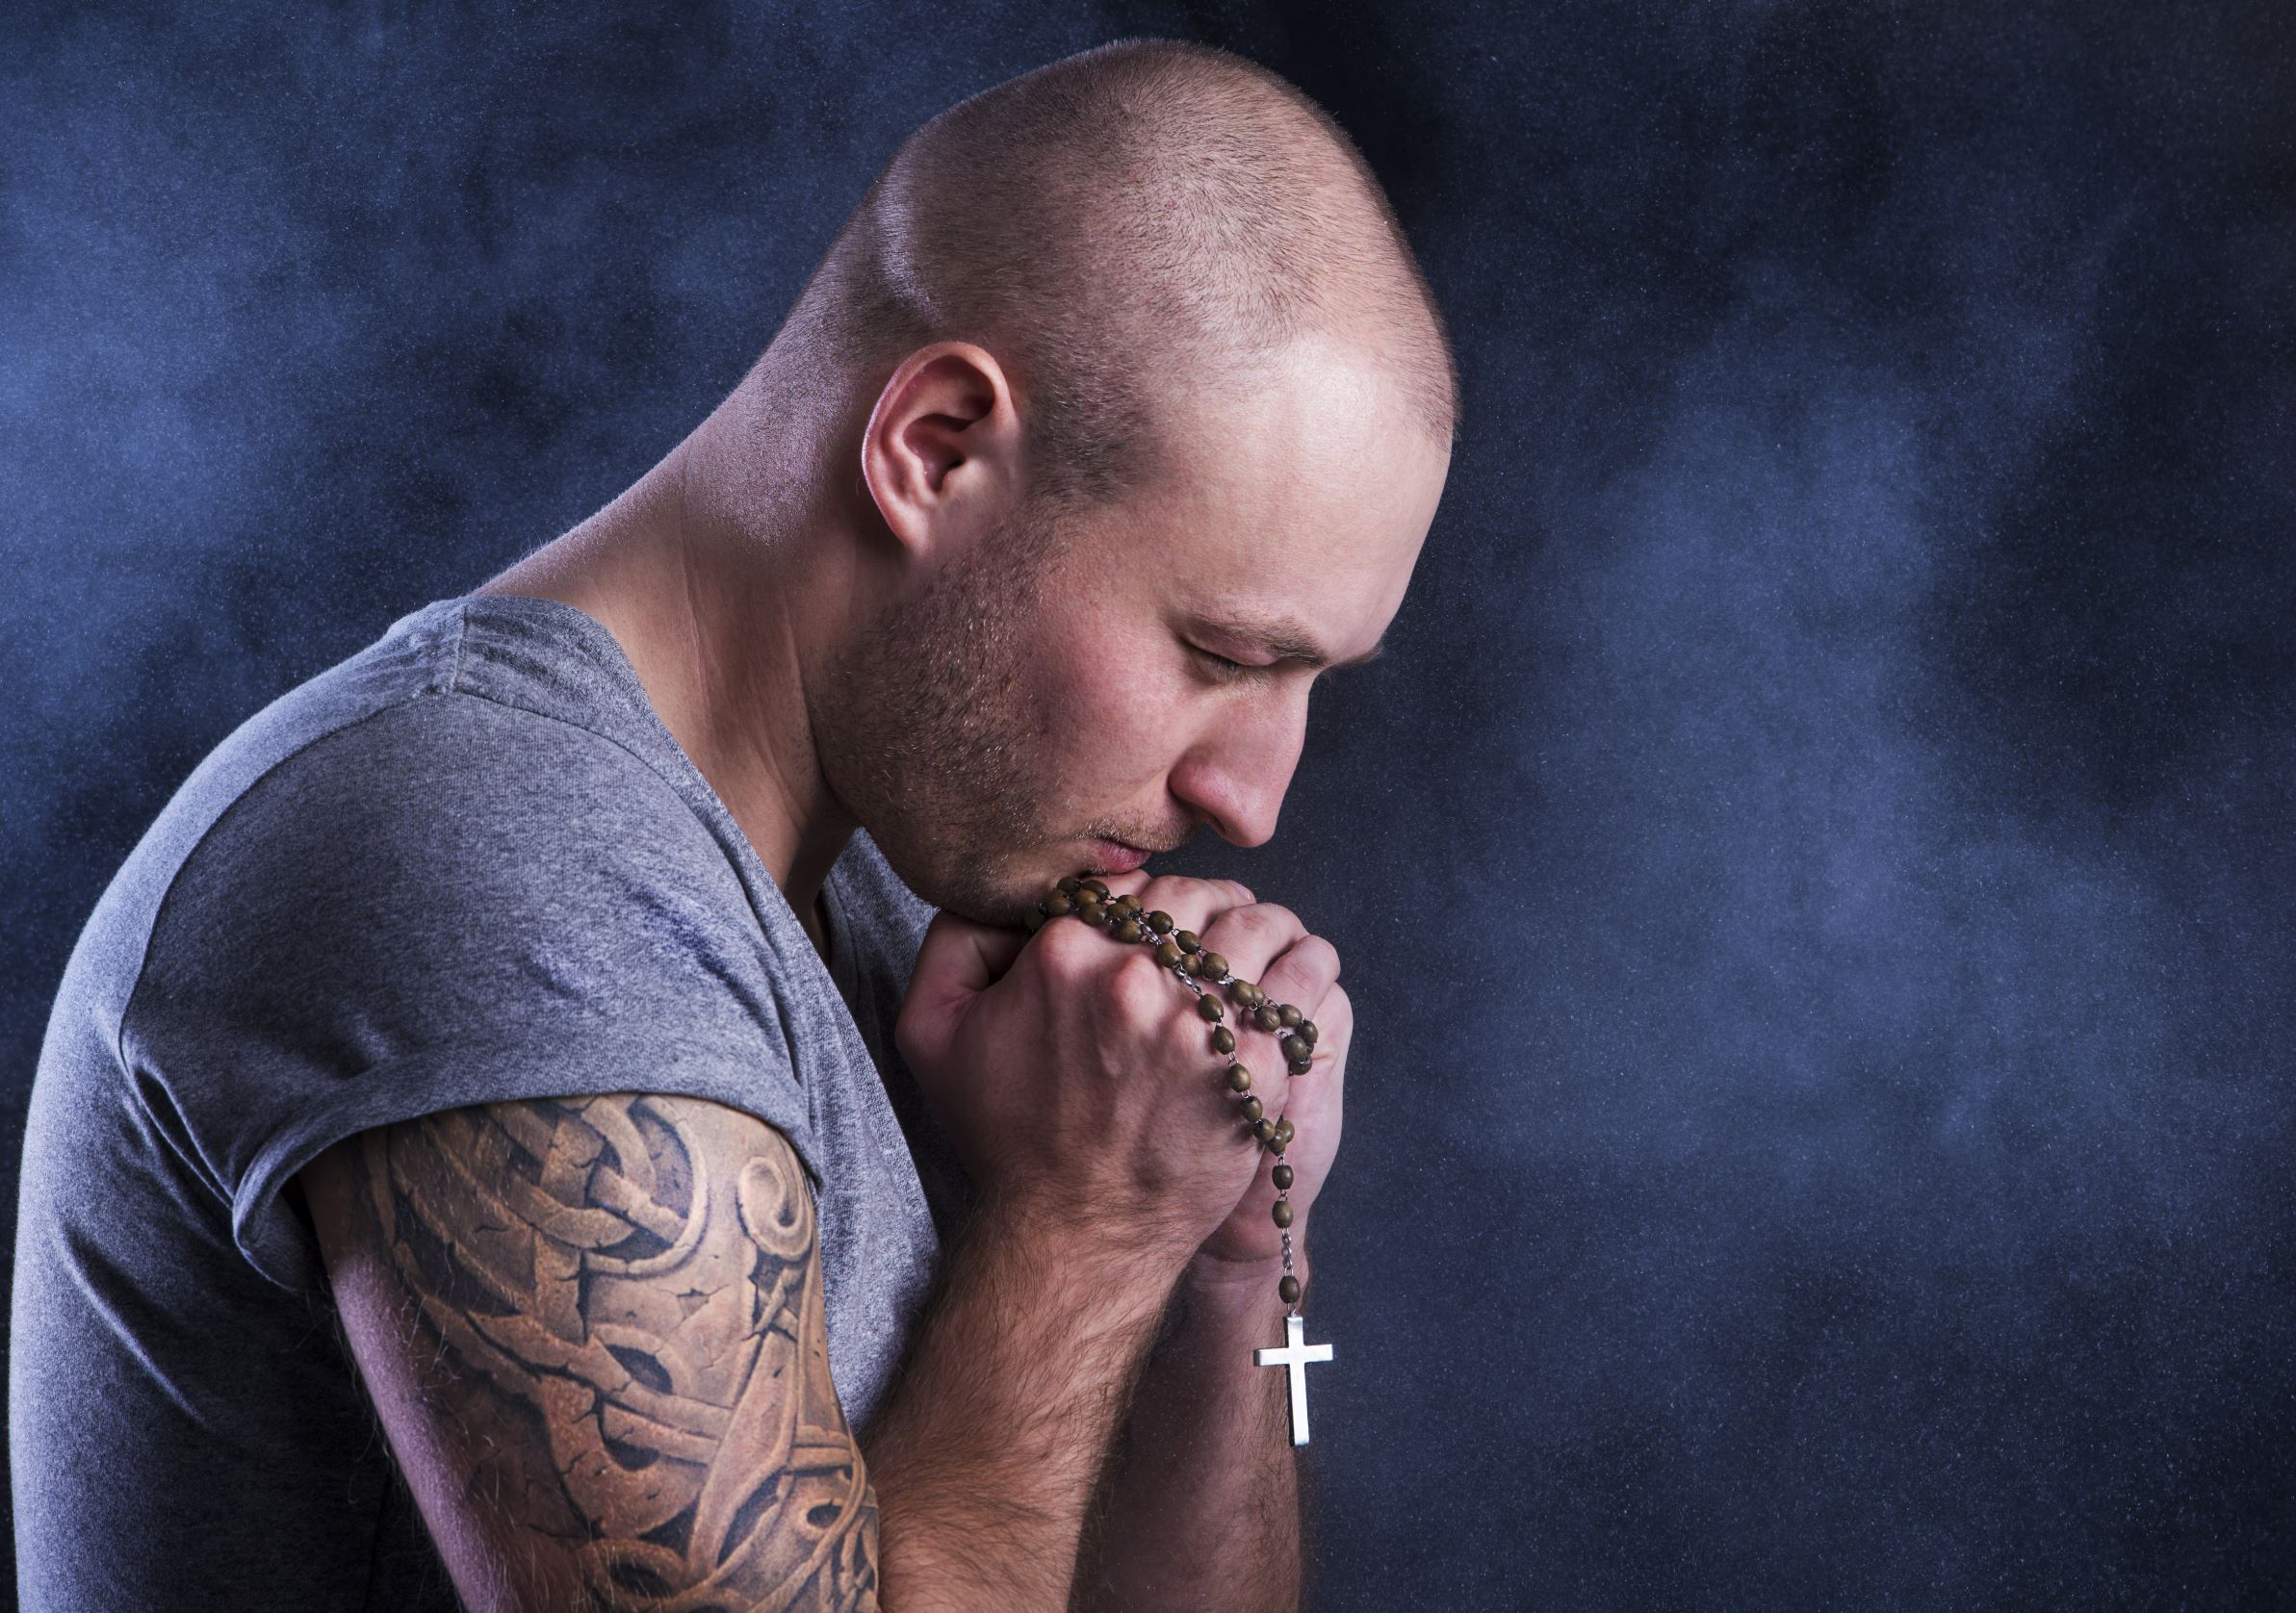 Christian Man Tattooed With Rosary Praying Hands